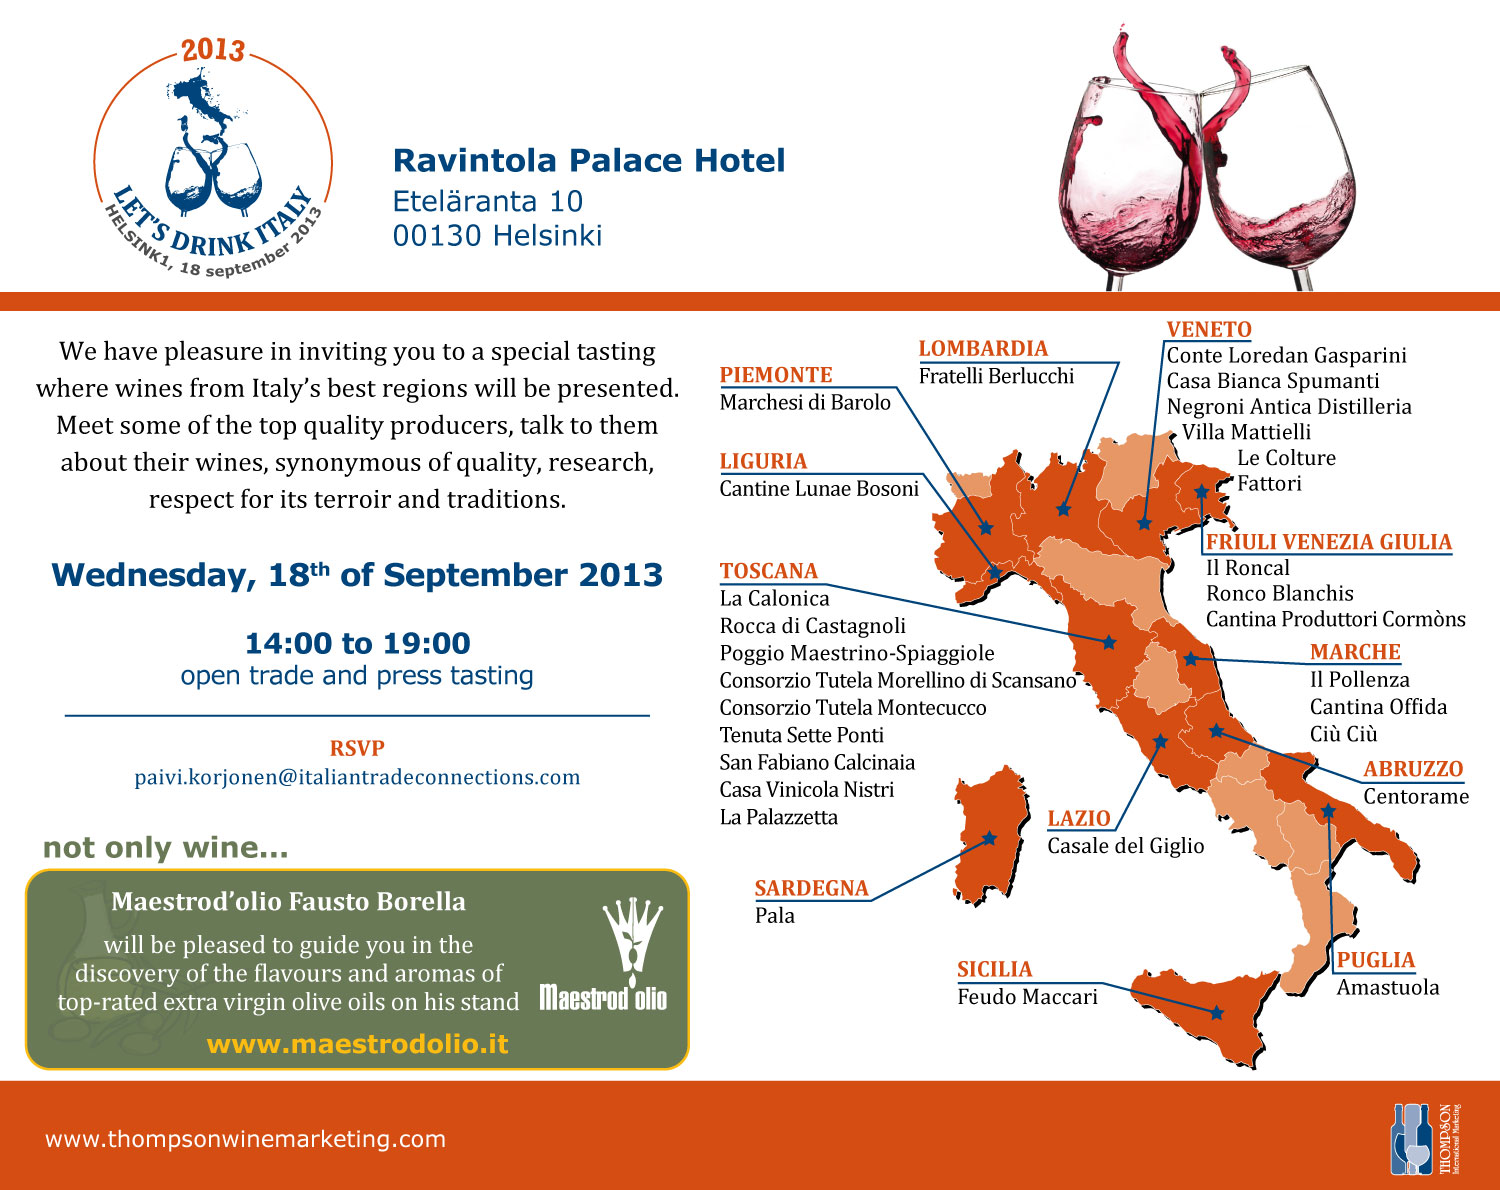 Let's Drink Italy/Thompson Wine Marketing